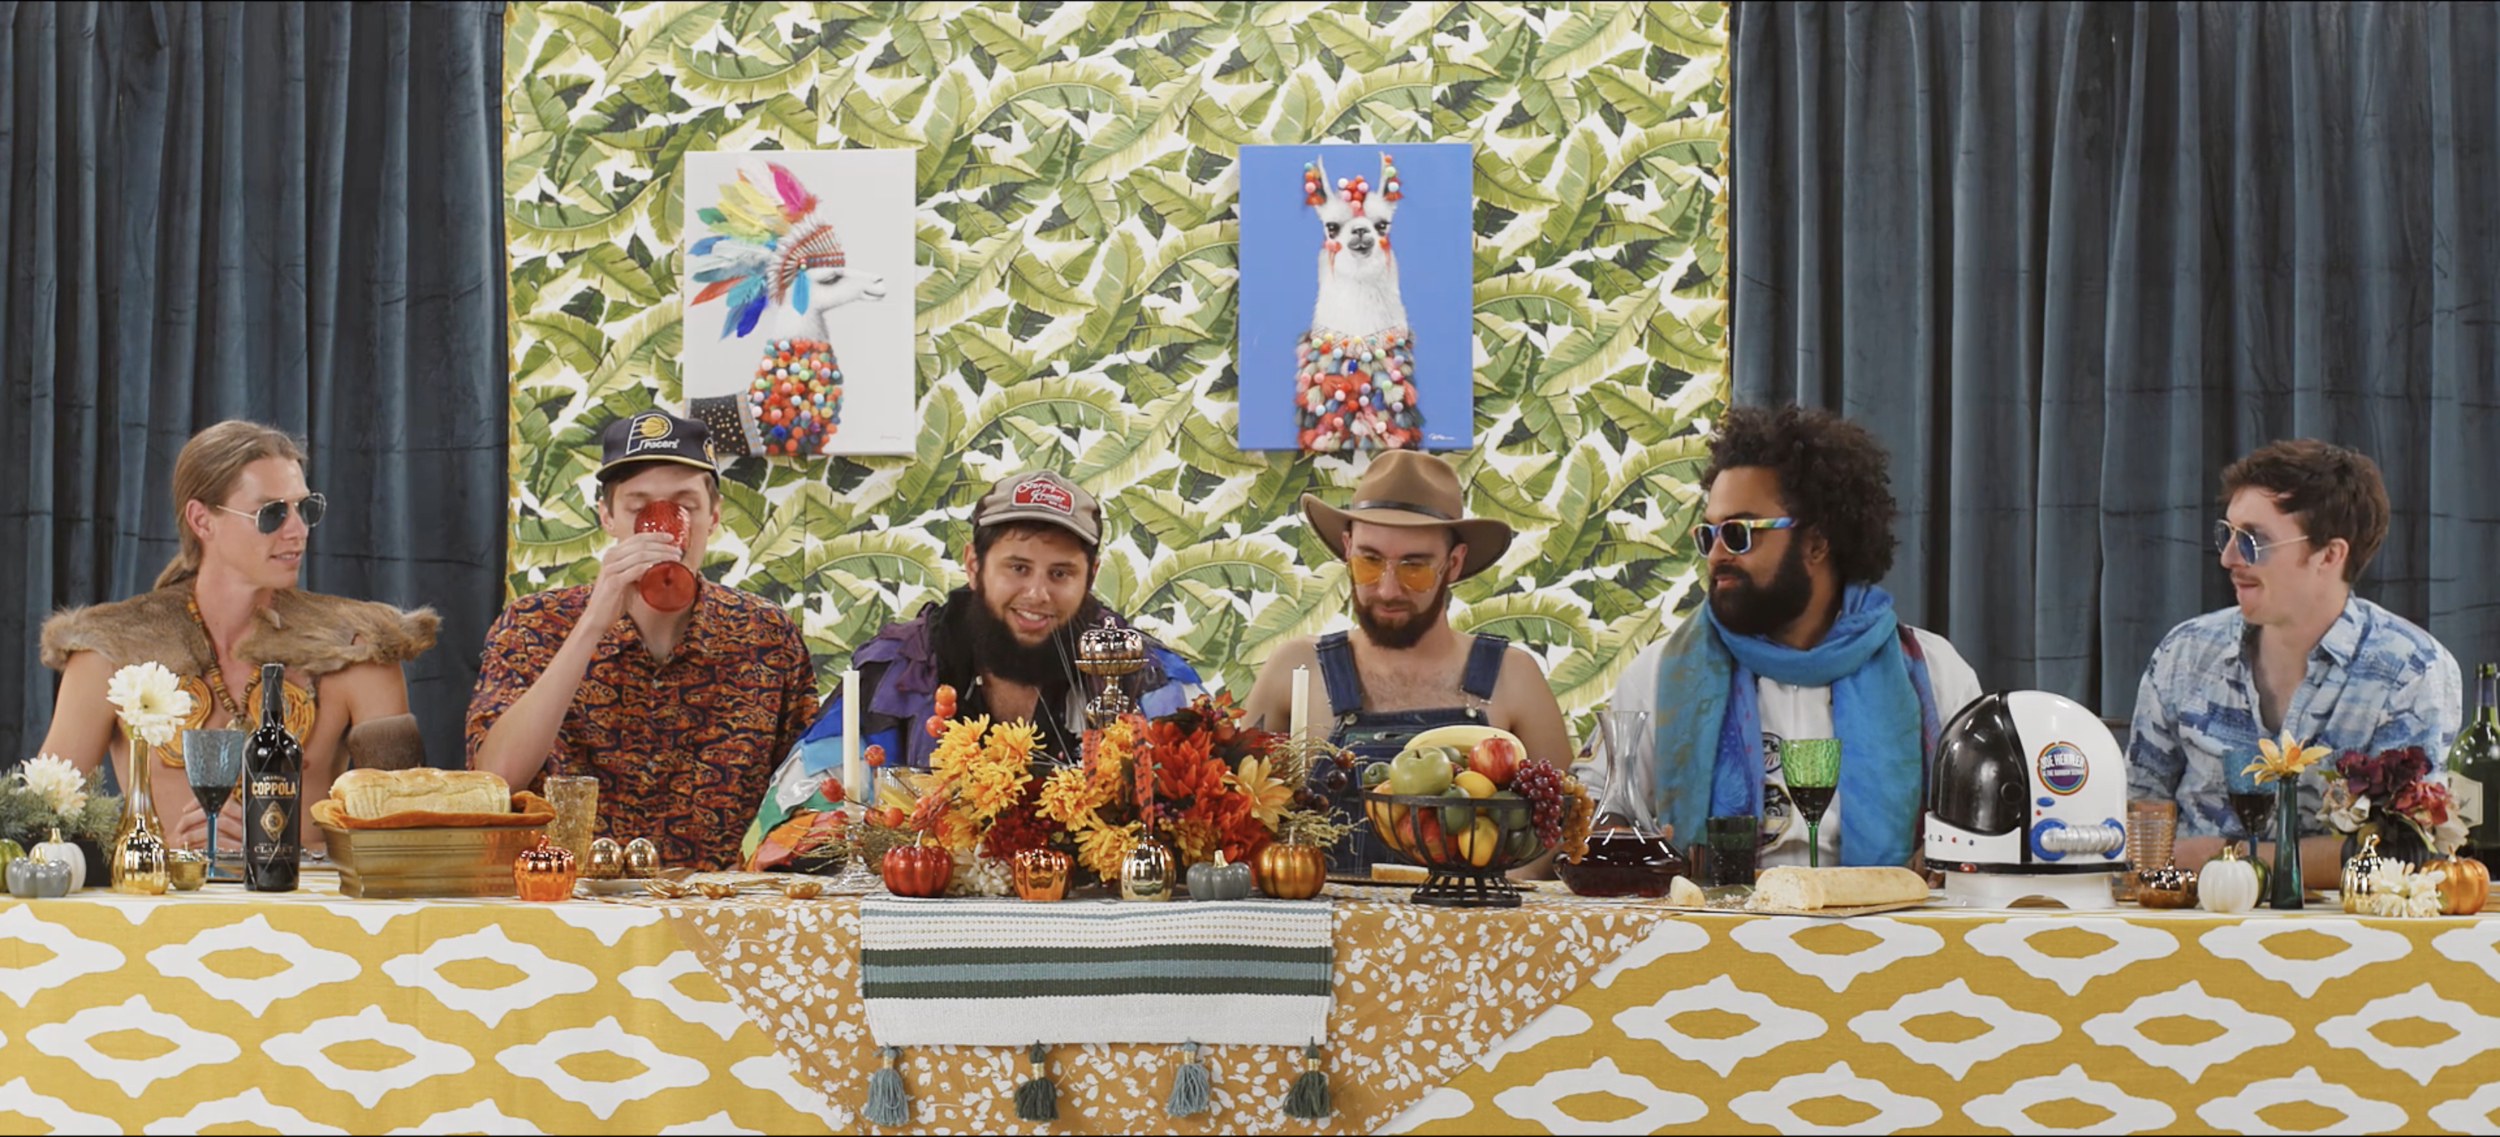 EPISODE FOUR - JOE HERTLER & THE RAINBOW SEEKERS